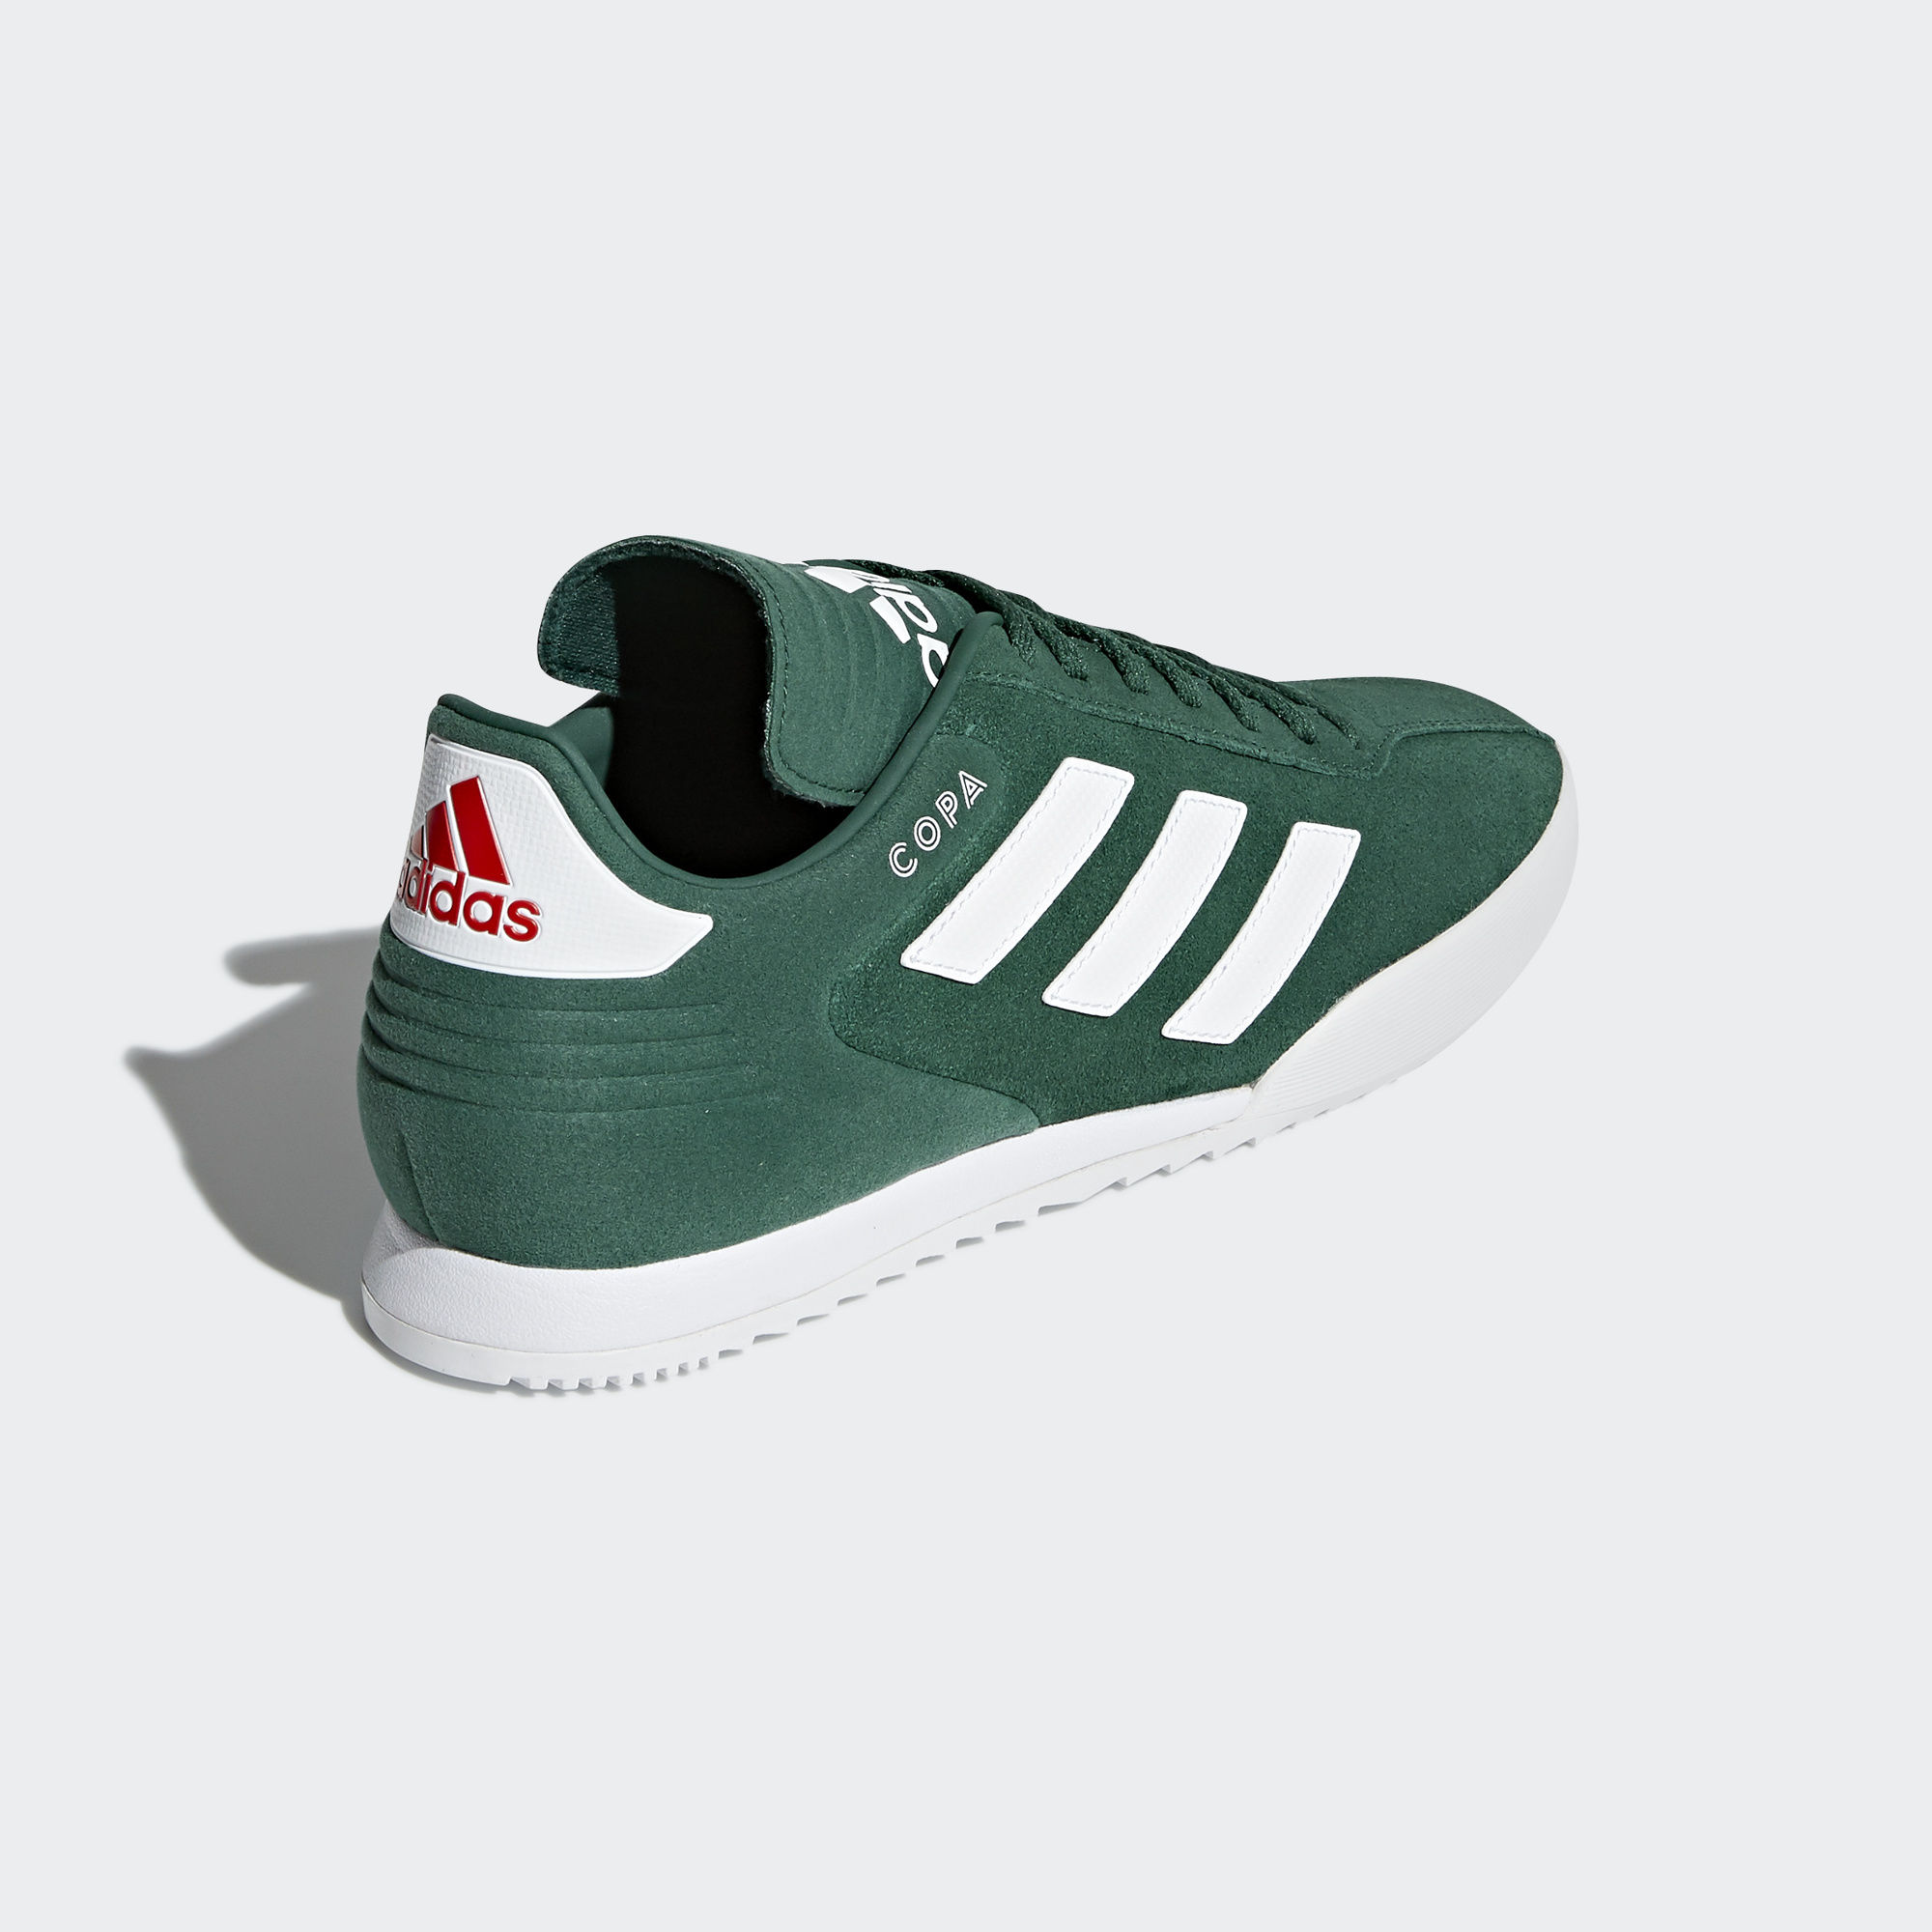 Adidas Copa Super Shoes  Collegiate Green  Running White